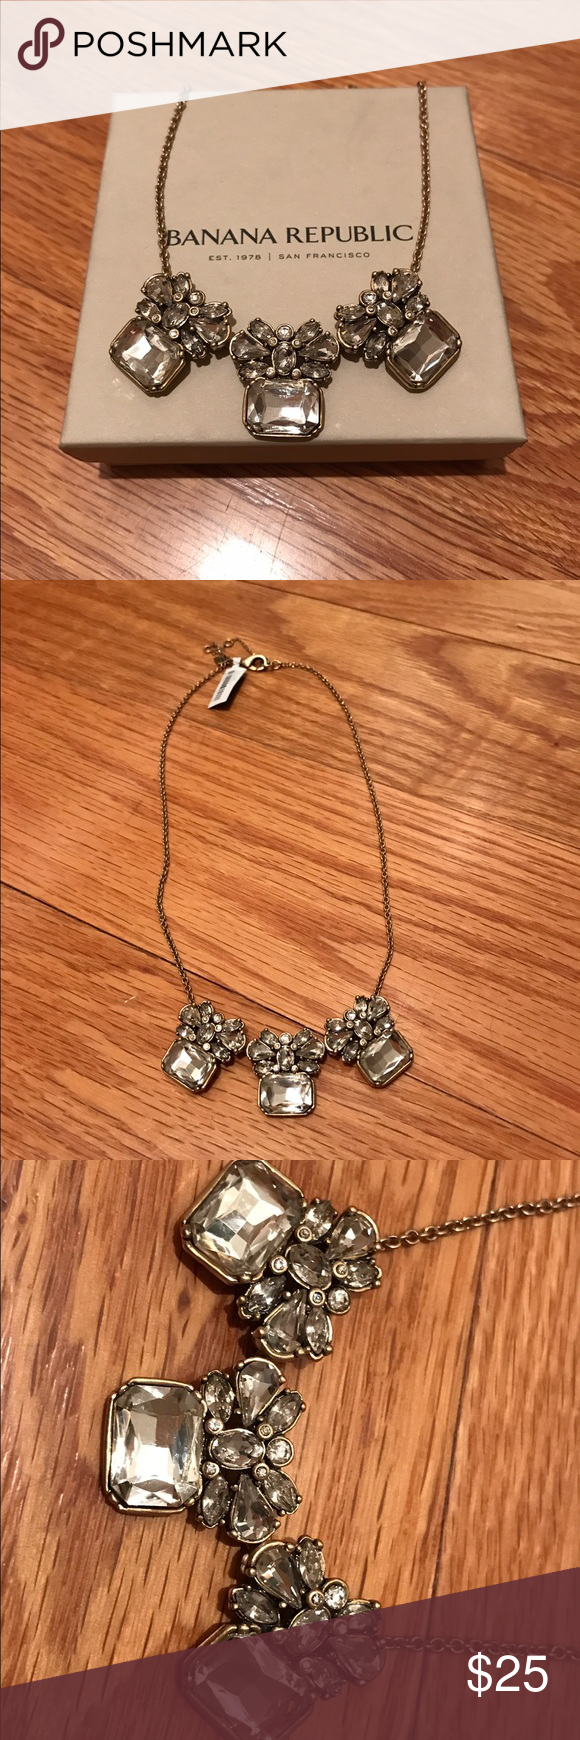 NWT Banana Republic Crystal Necklace New with tags Banana Republic crystal necklace Banana Republic Jewelry Necklaces